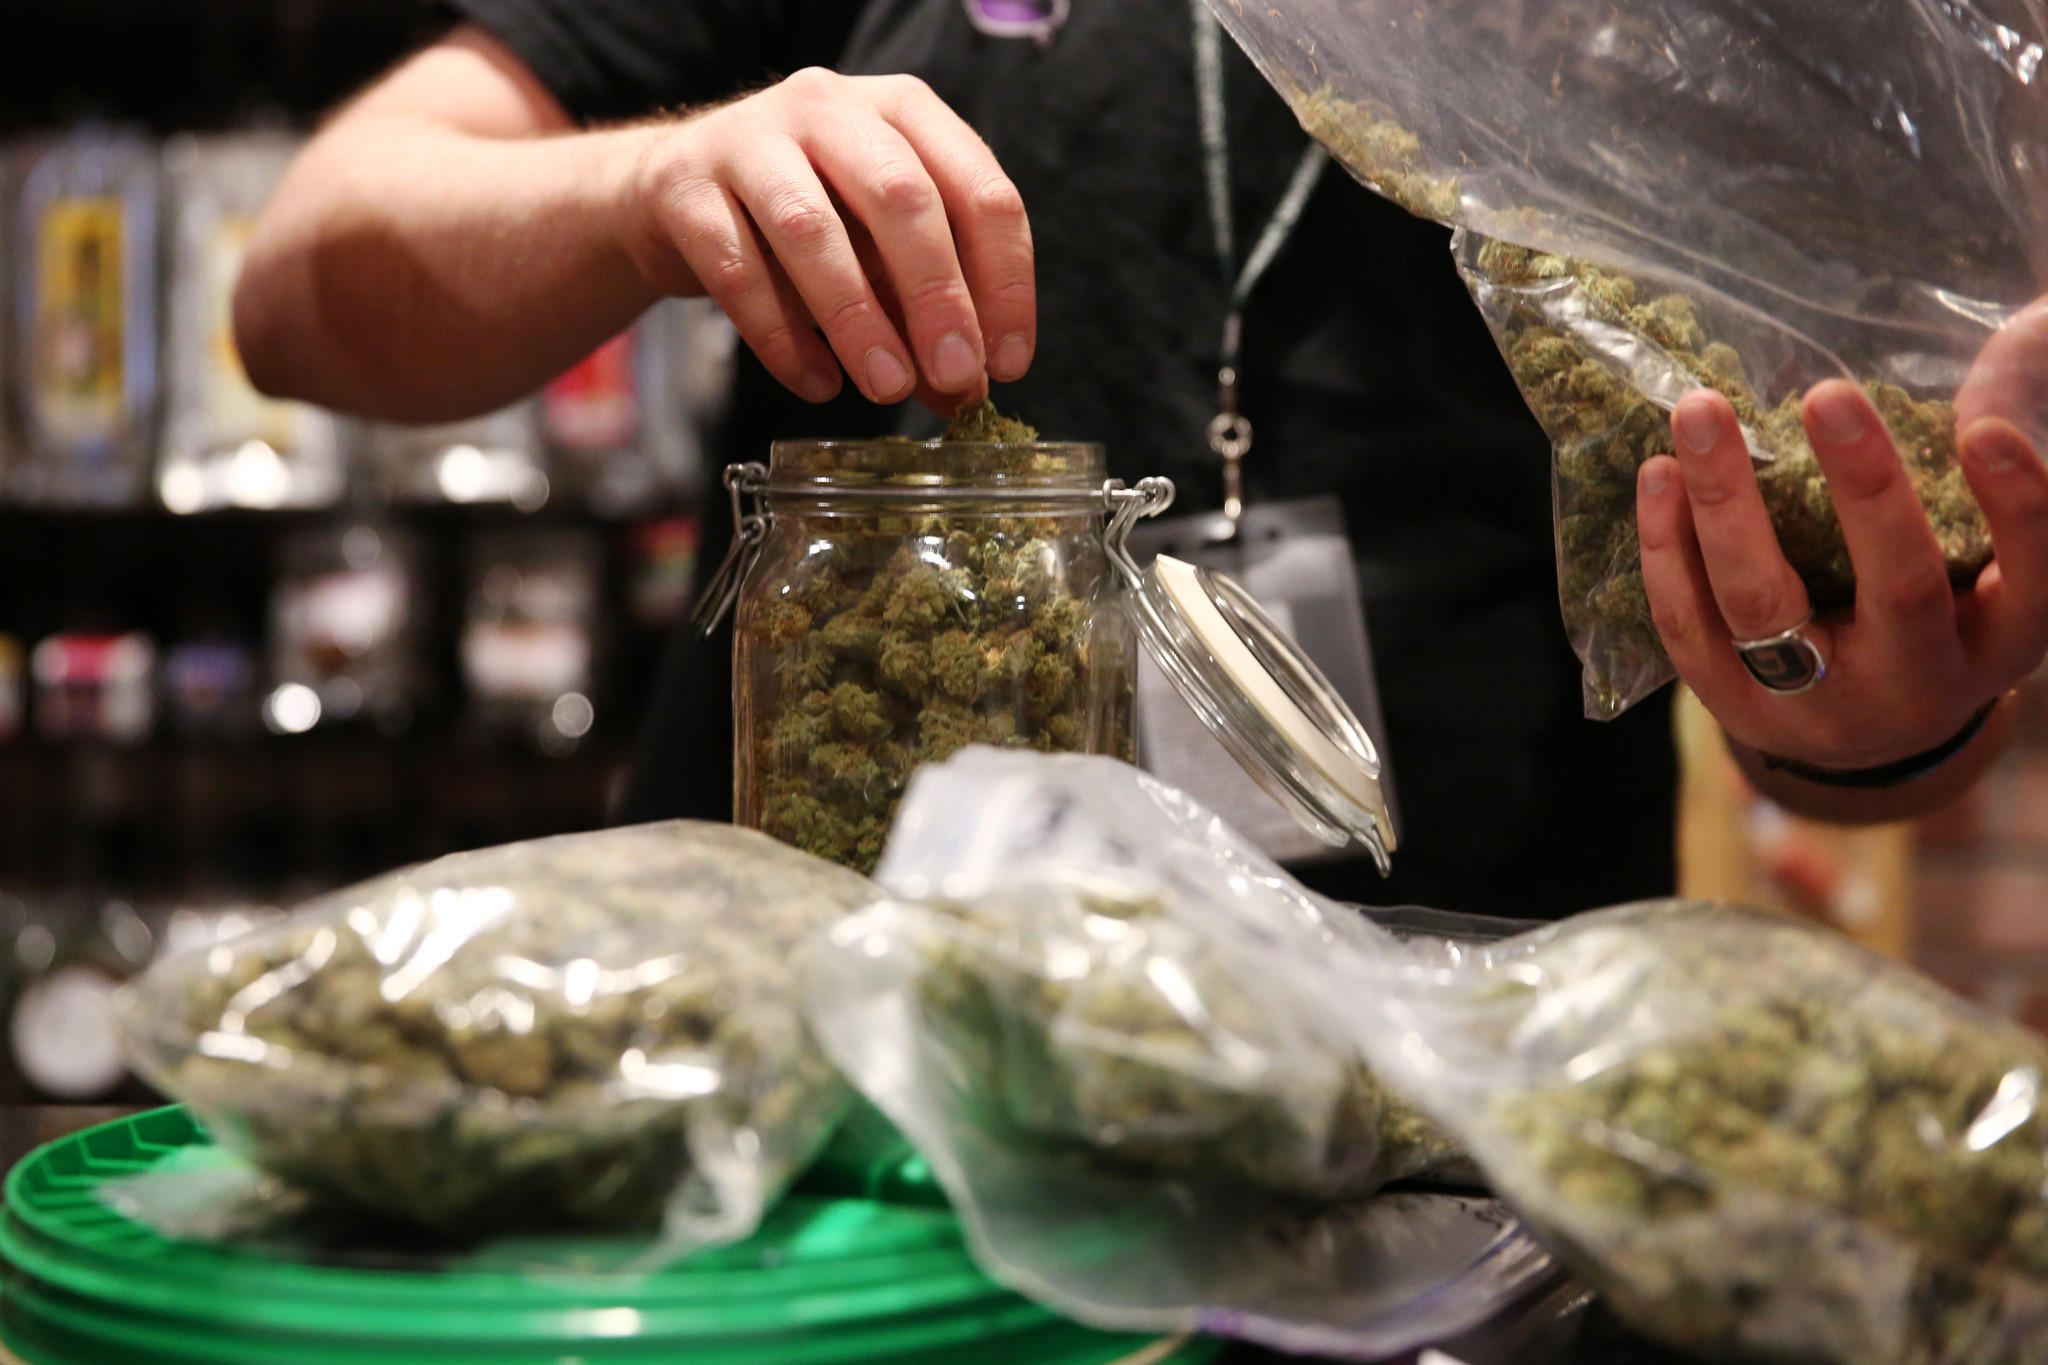 Illinois state regulators have proposed several changes in the rules governing the use of medical marijuana.